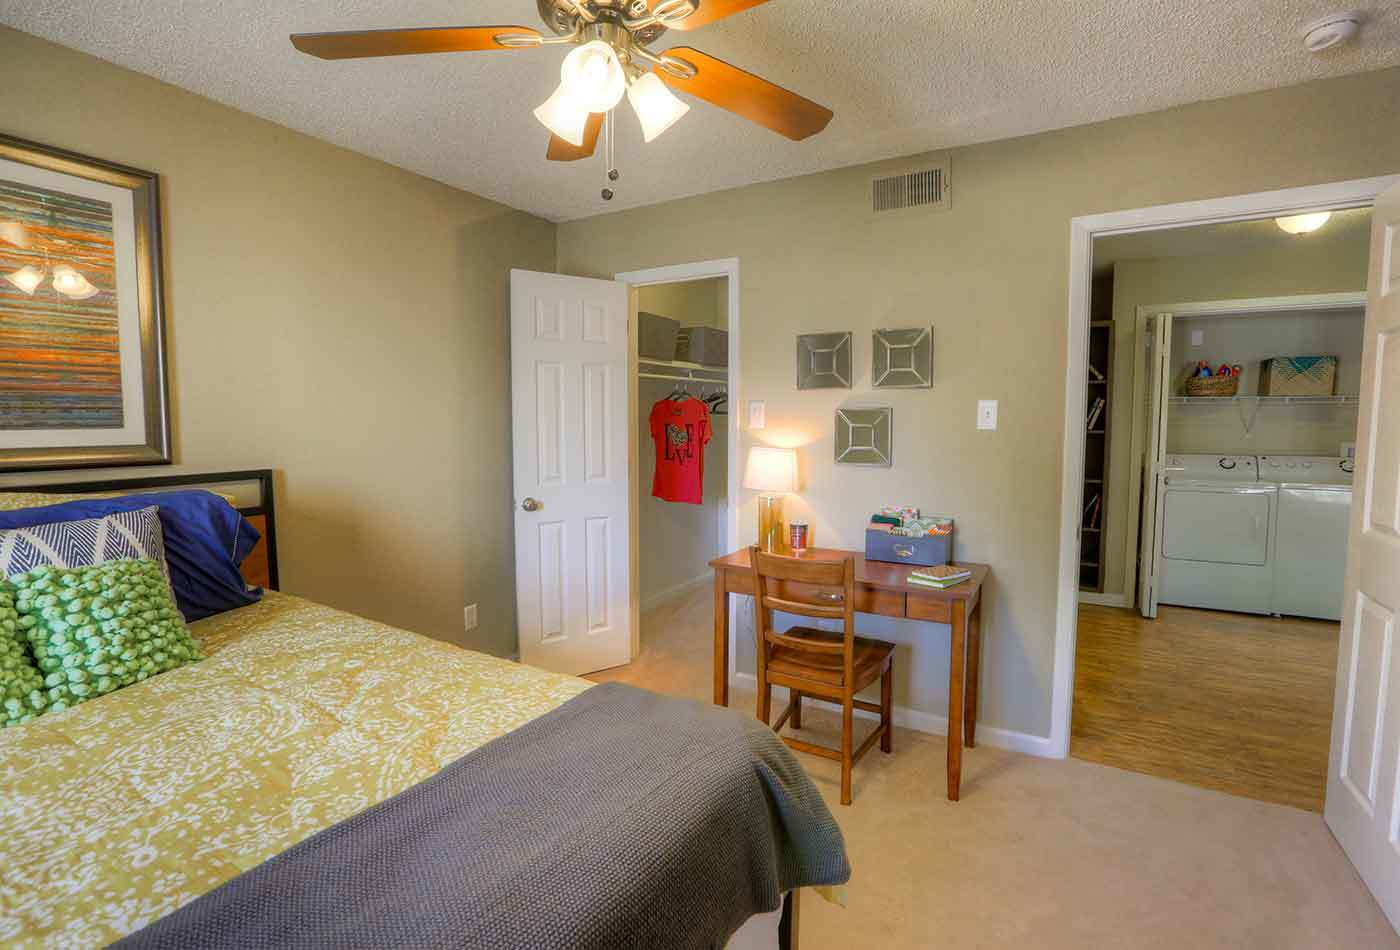 A great home for students at Raiders Walk Apartments